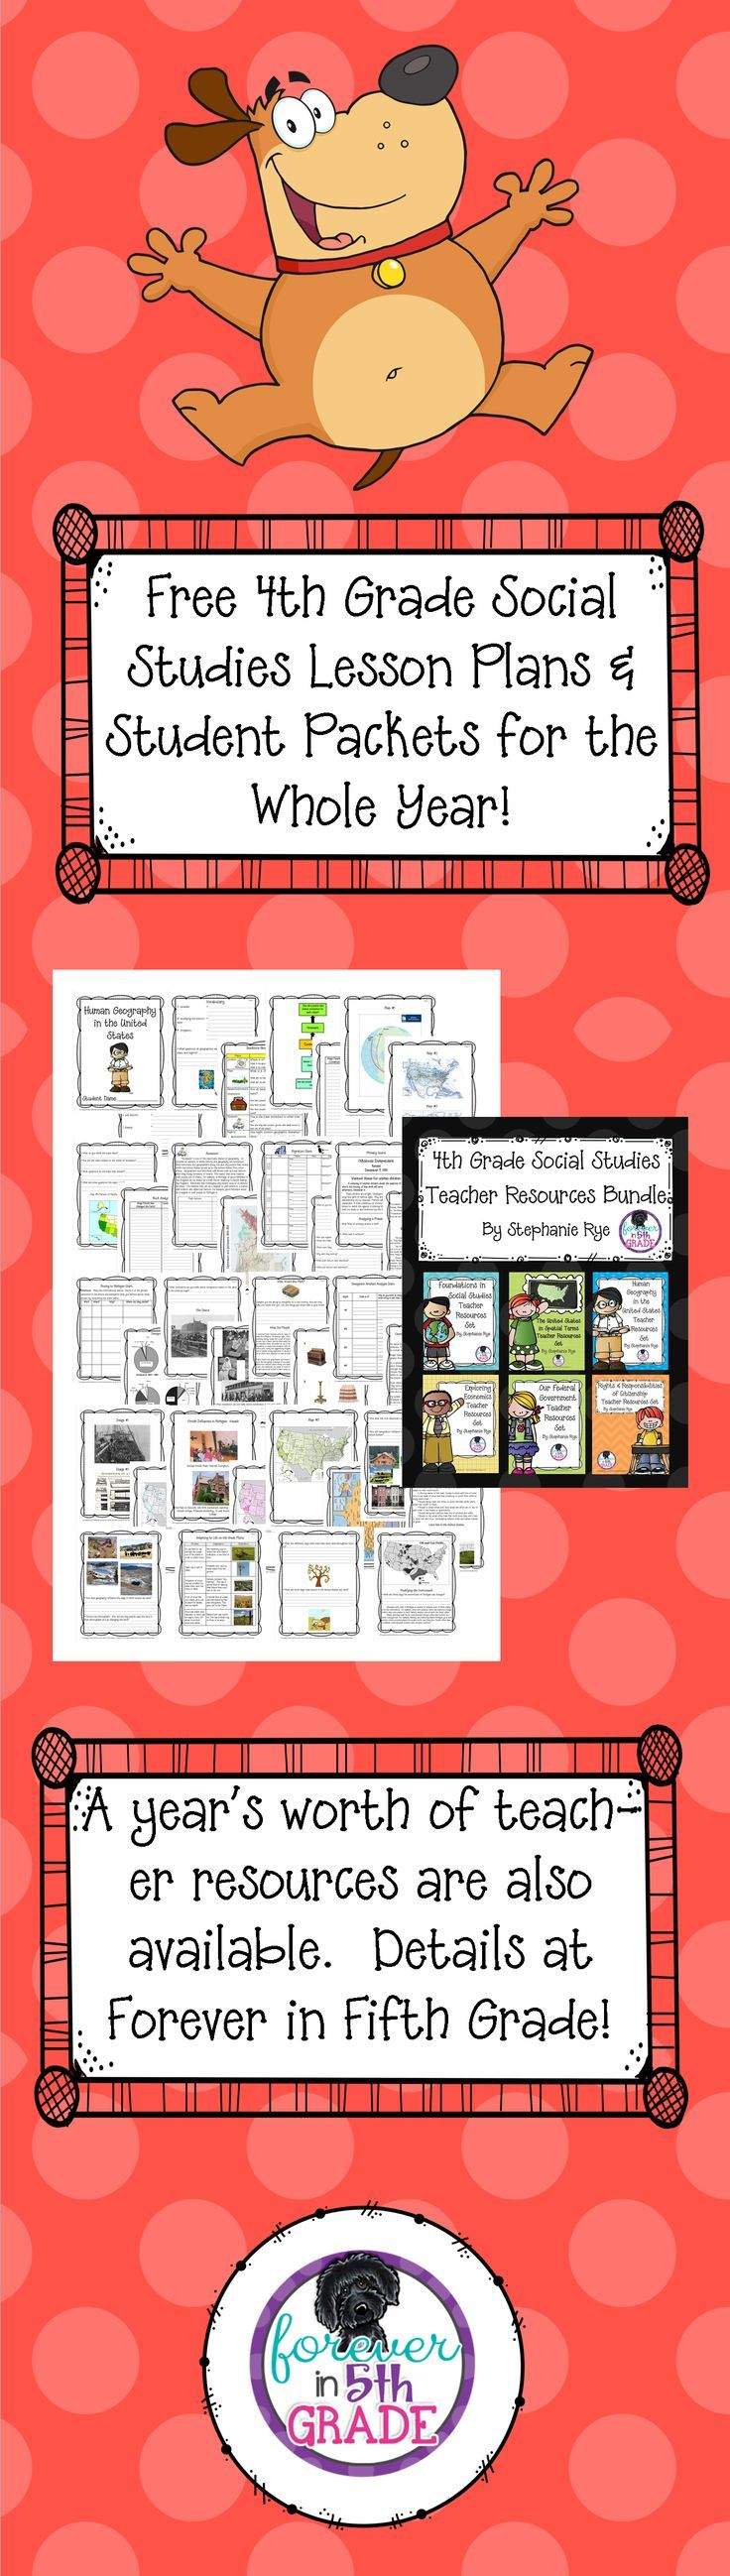 90 best fourth grade science and social studies images on pinterest free 4th grade social studies lesson plans and student packets for the whole year details fandeluxe Gallery